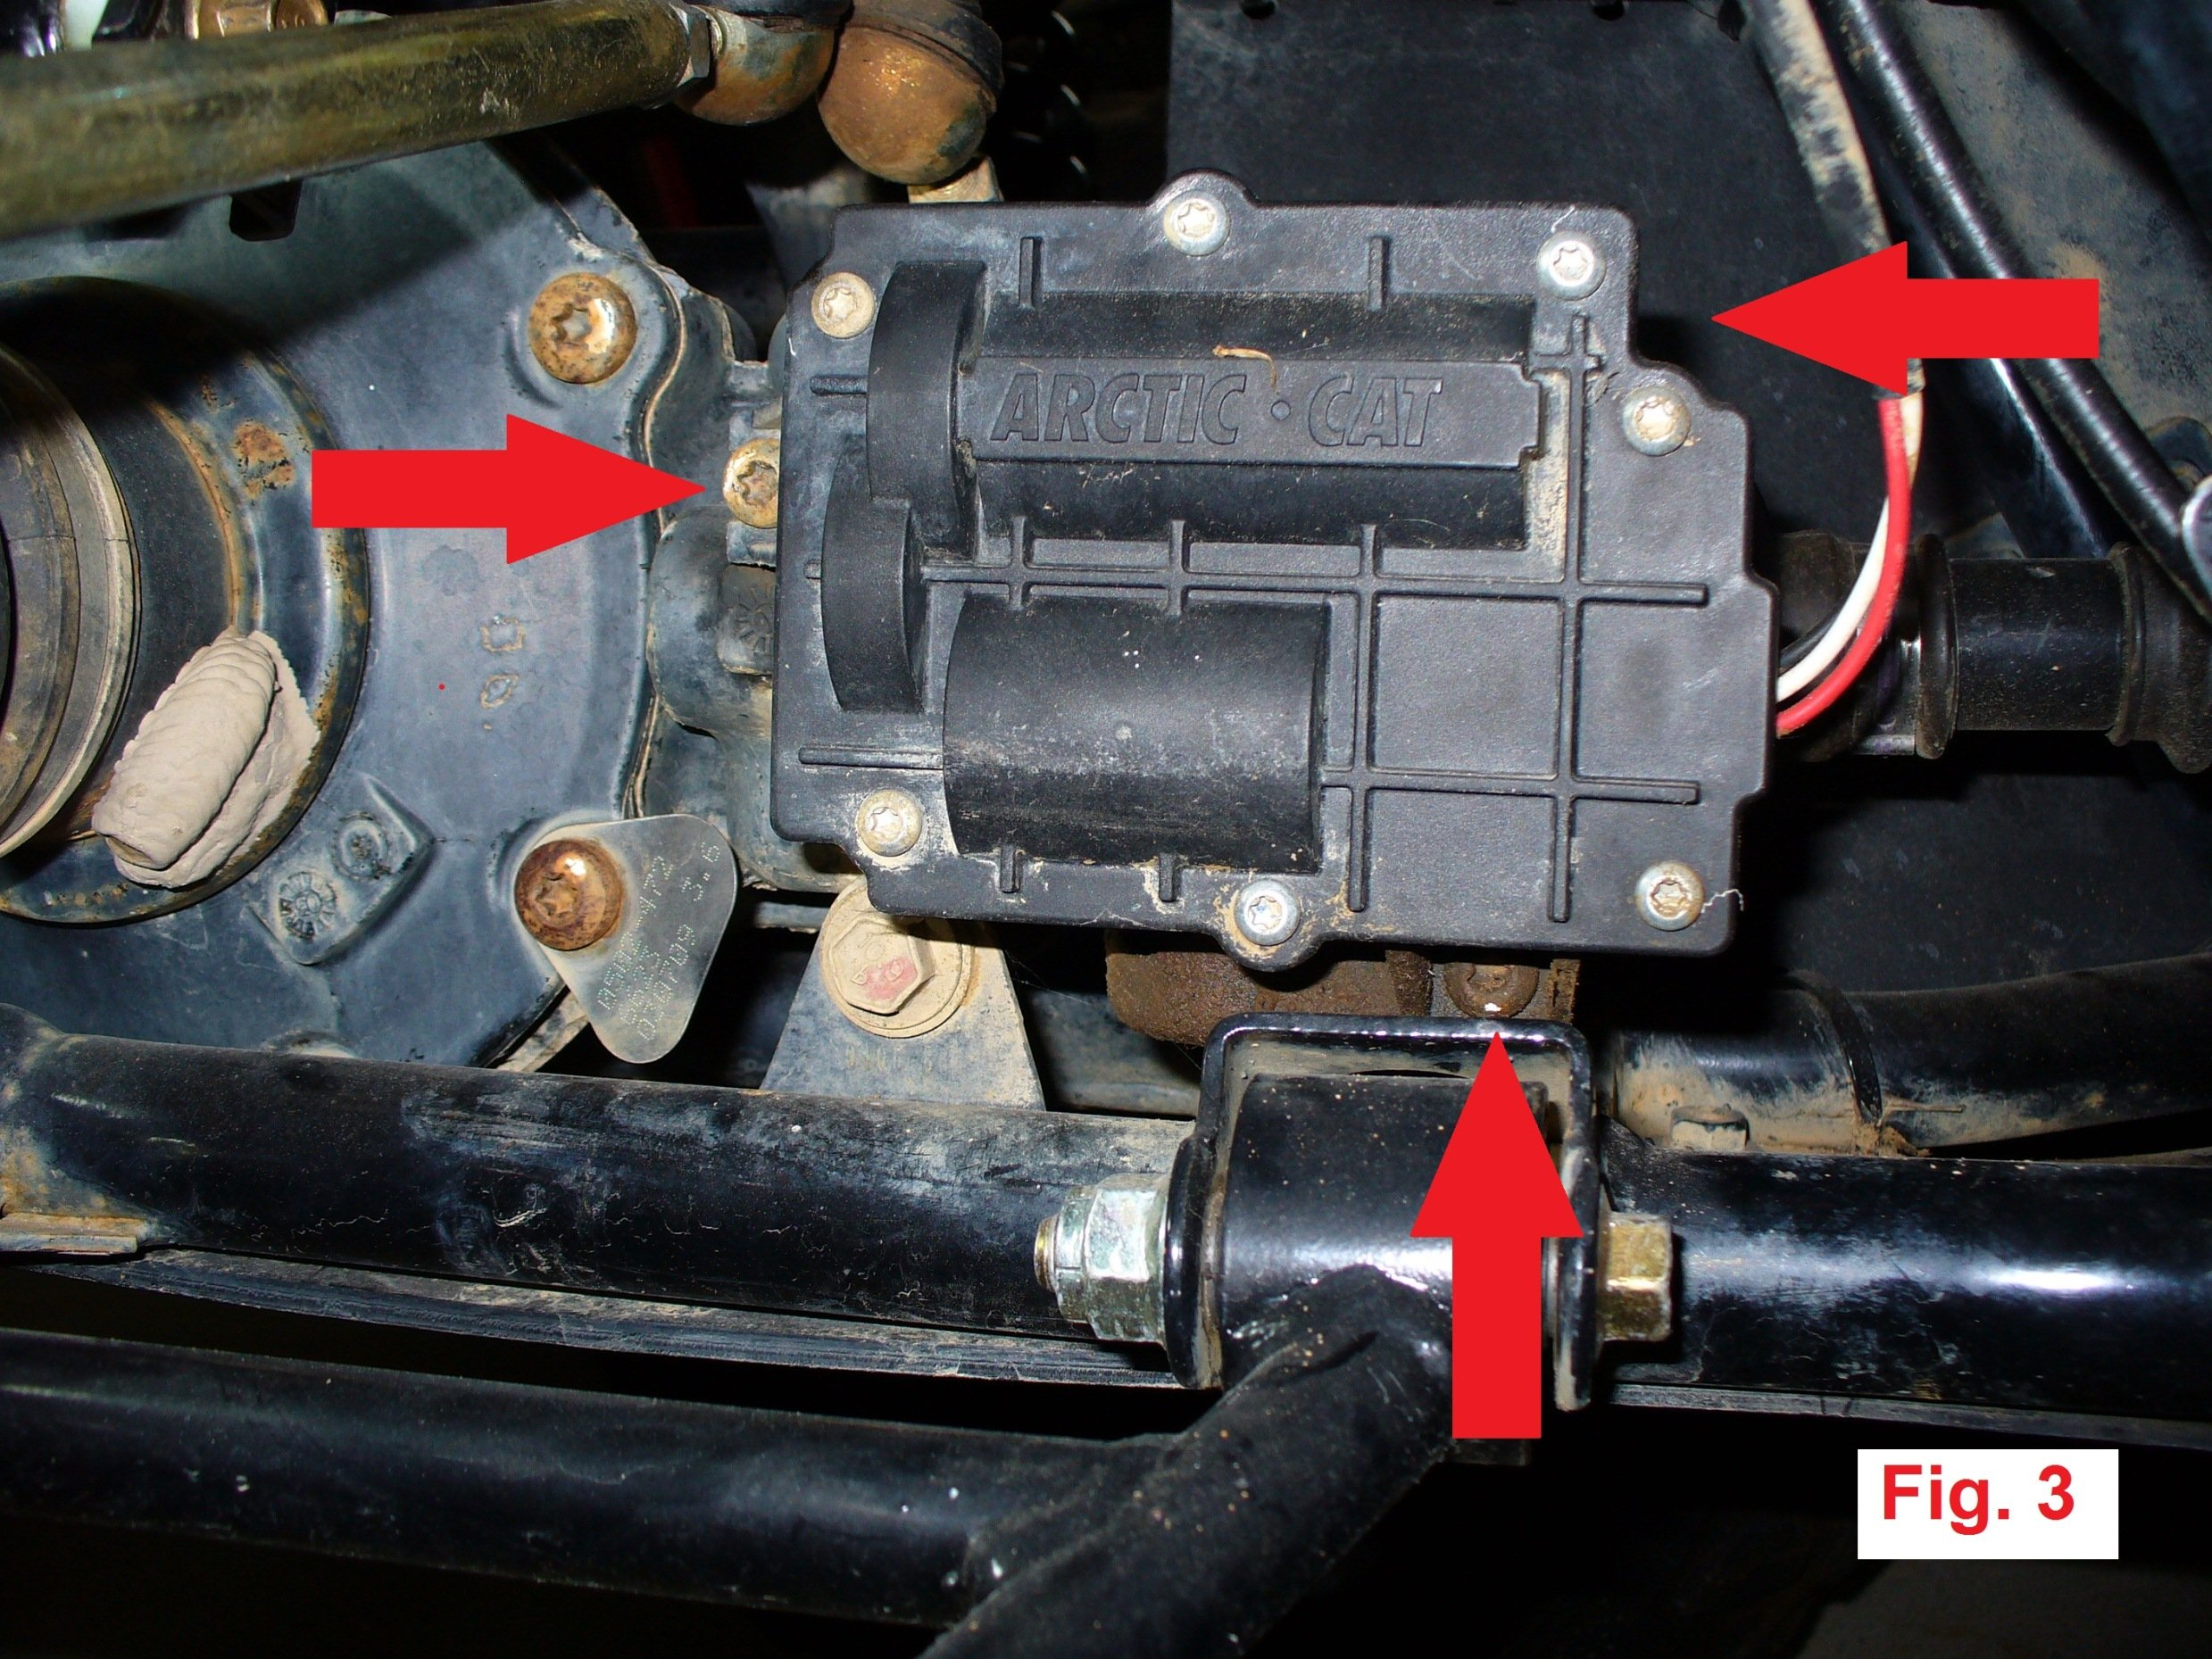 how to wire a garage diagram race car alternator wiring 4wd actuator 0502-296 (3-wire) removal, disassembly, and waterproofing guide - arcticchat.com ...